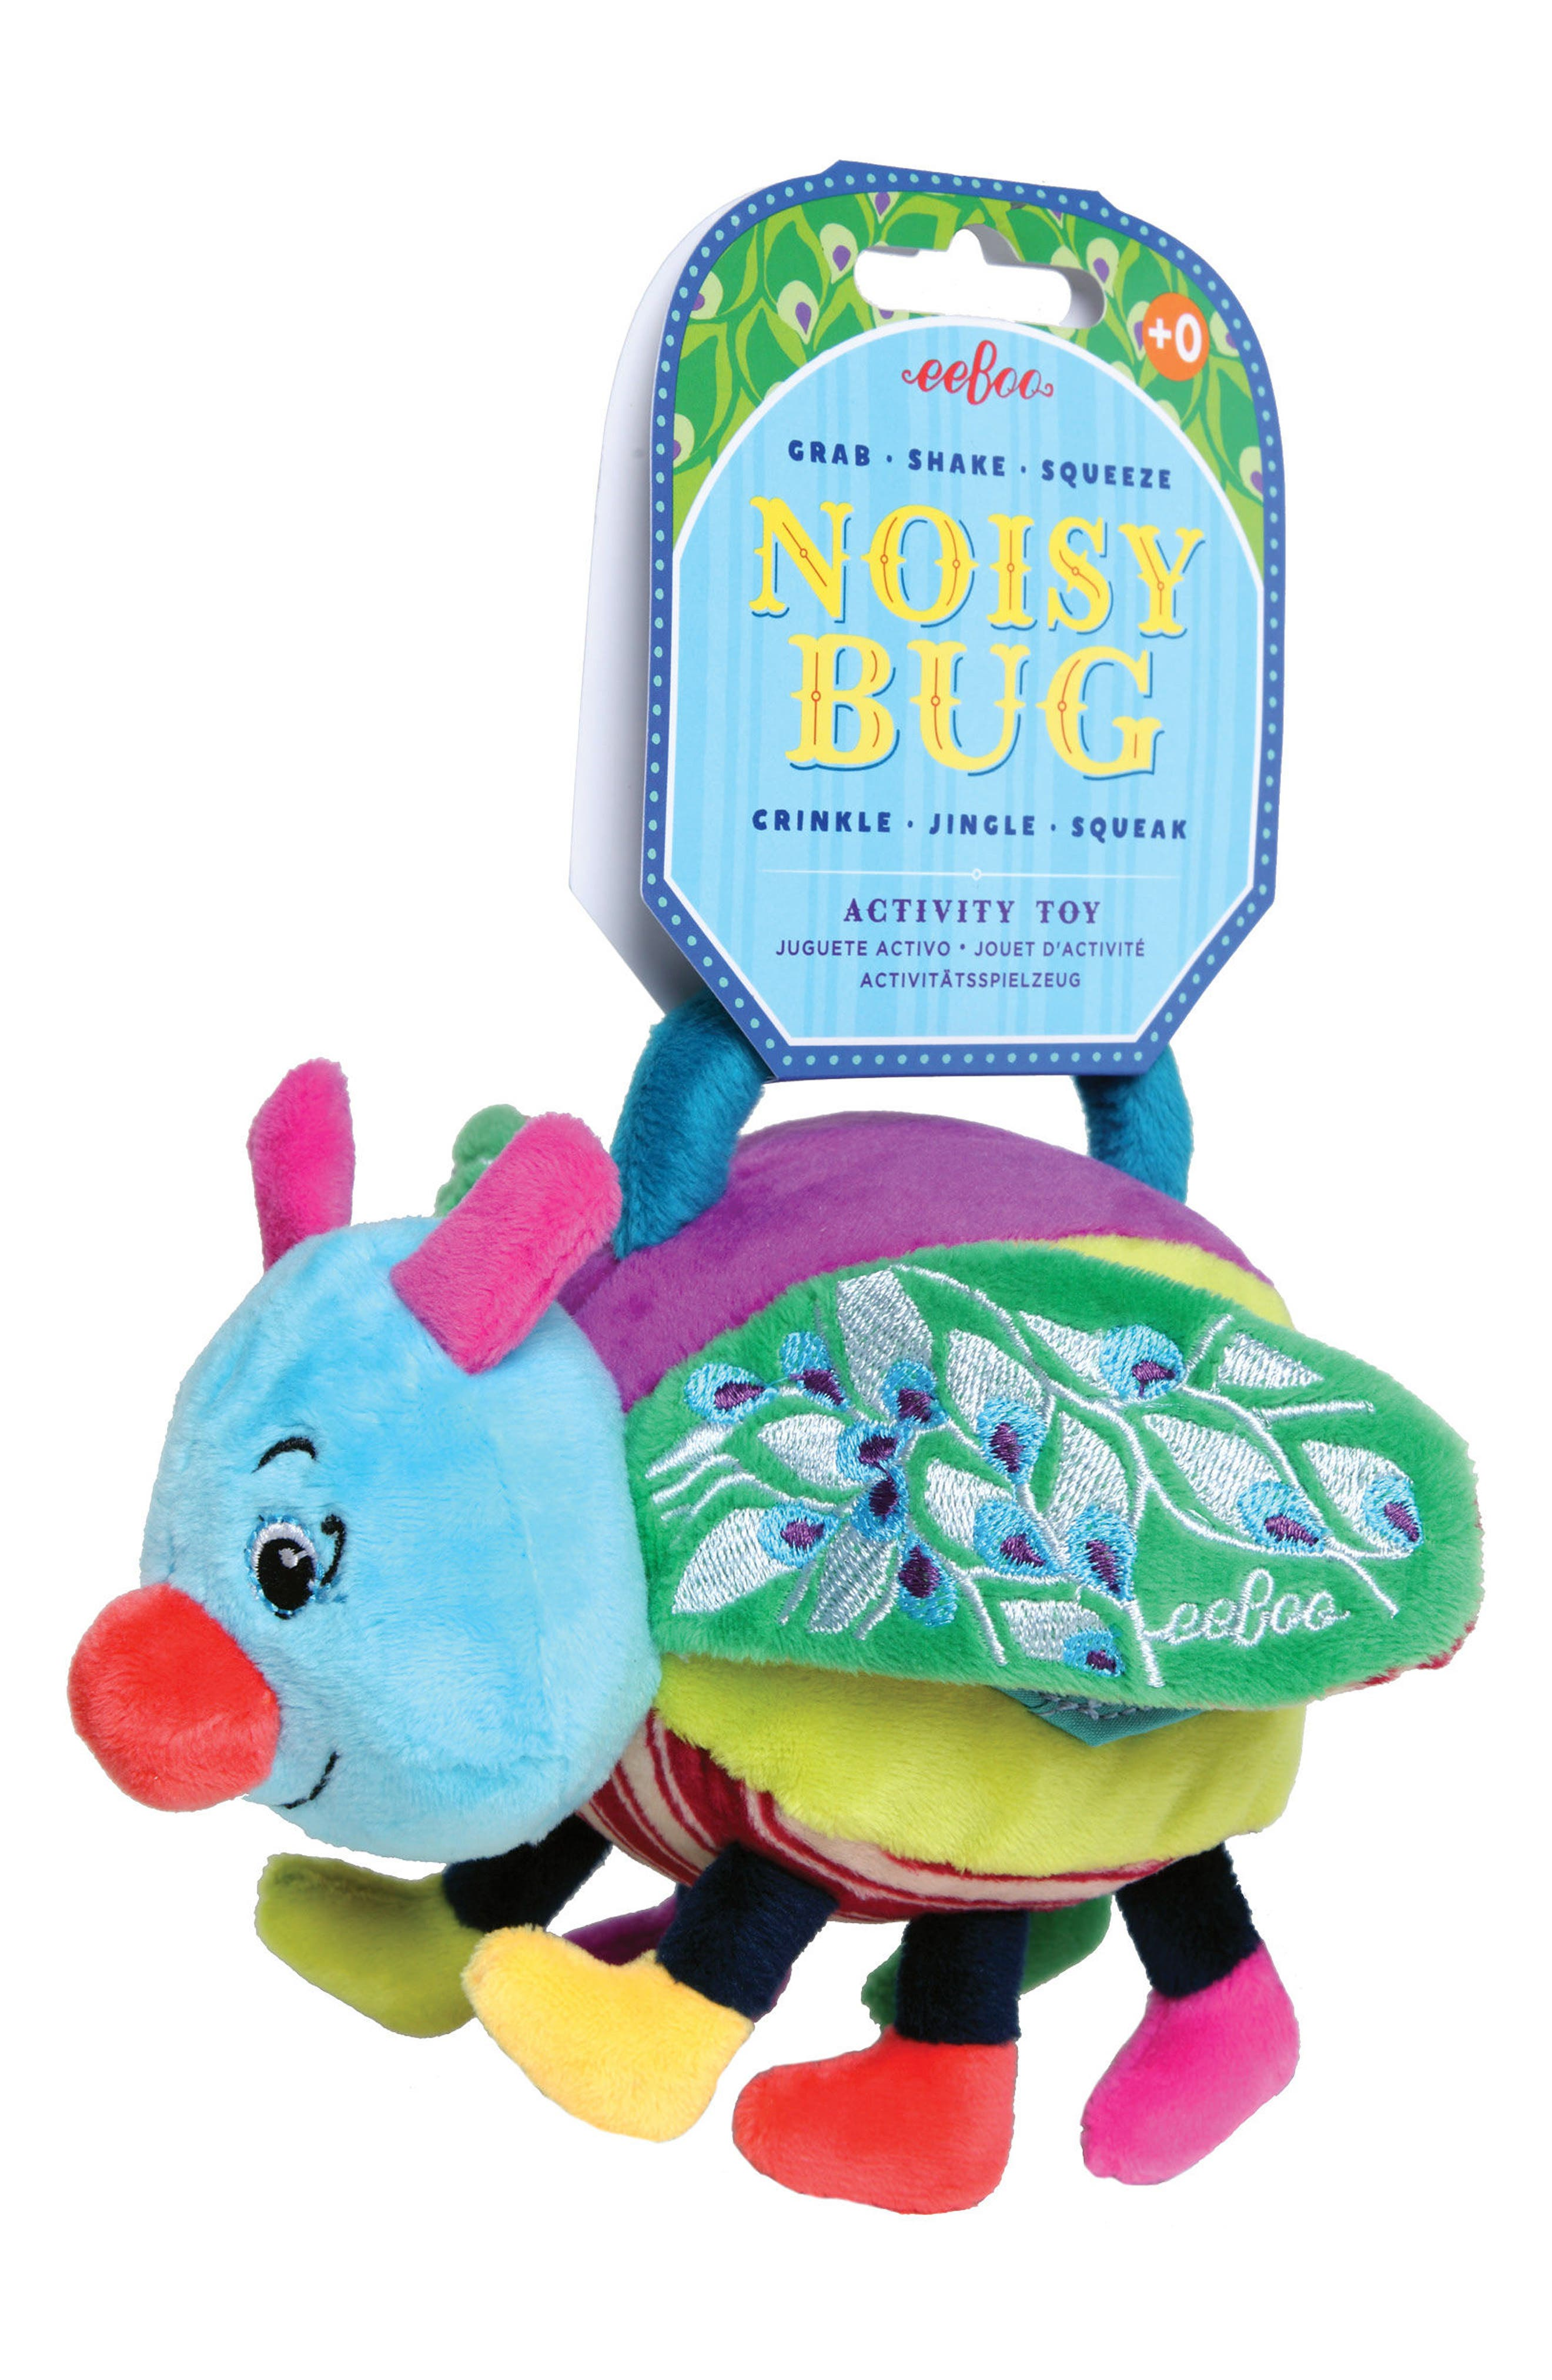 Noisy Bug Stuffed Toy,                             Alternate thumbnail 2, color,                             400